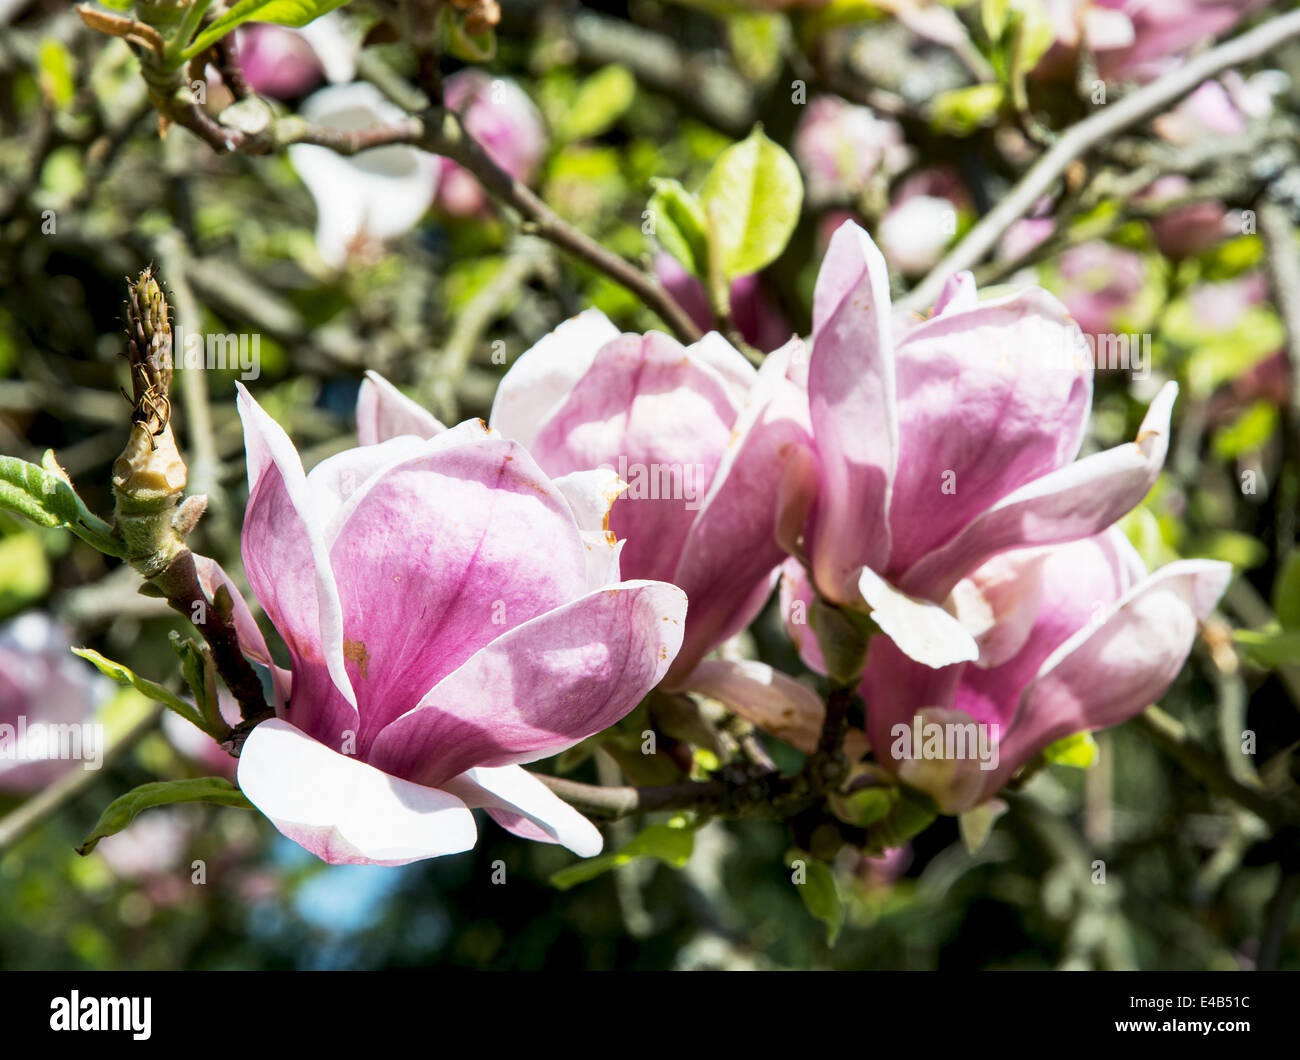 Detail of blooming magnolia in spring garden. Stock Photo